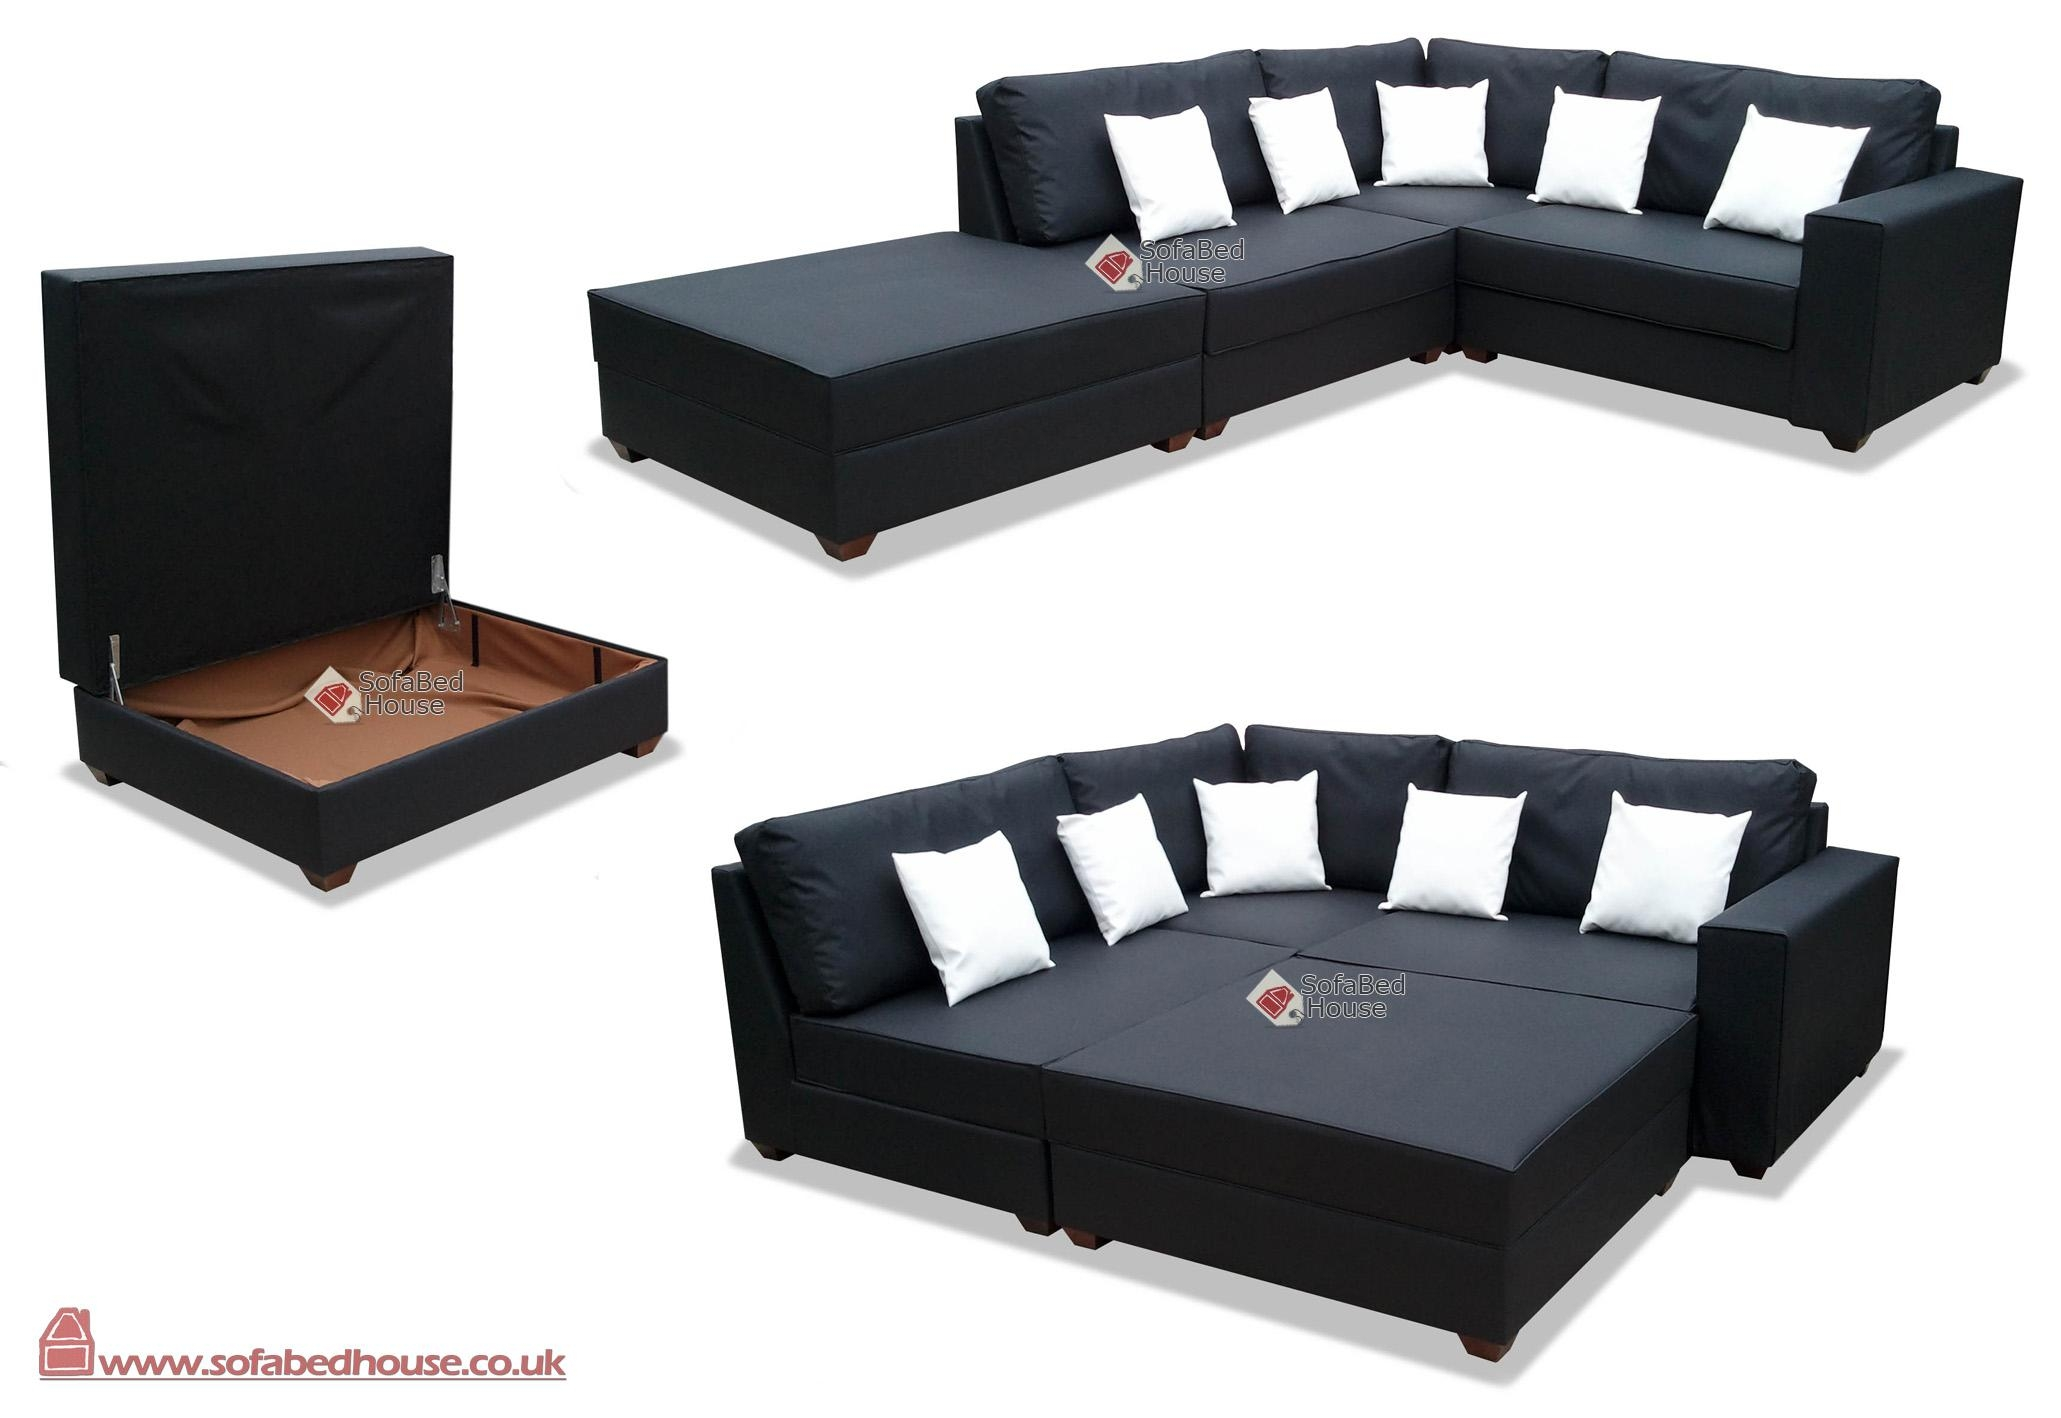 Cheap Corner Sofa Beds Uk | Crepeloversca Intended For Cheap Corner Sofa (Image 5 of 20)